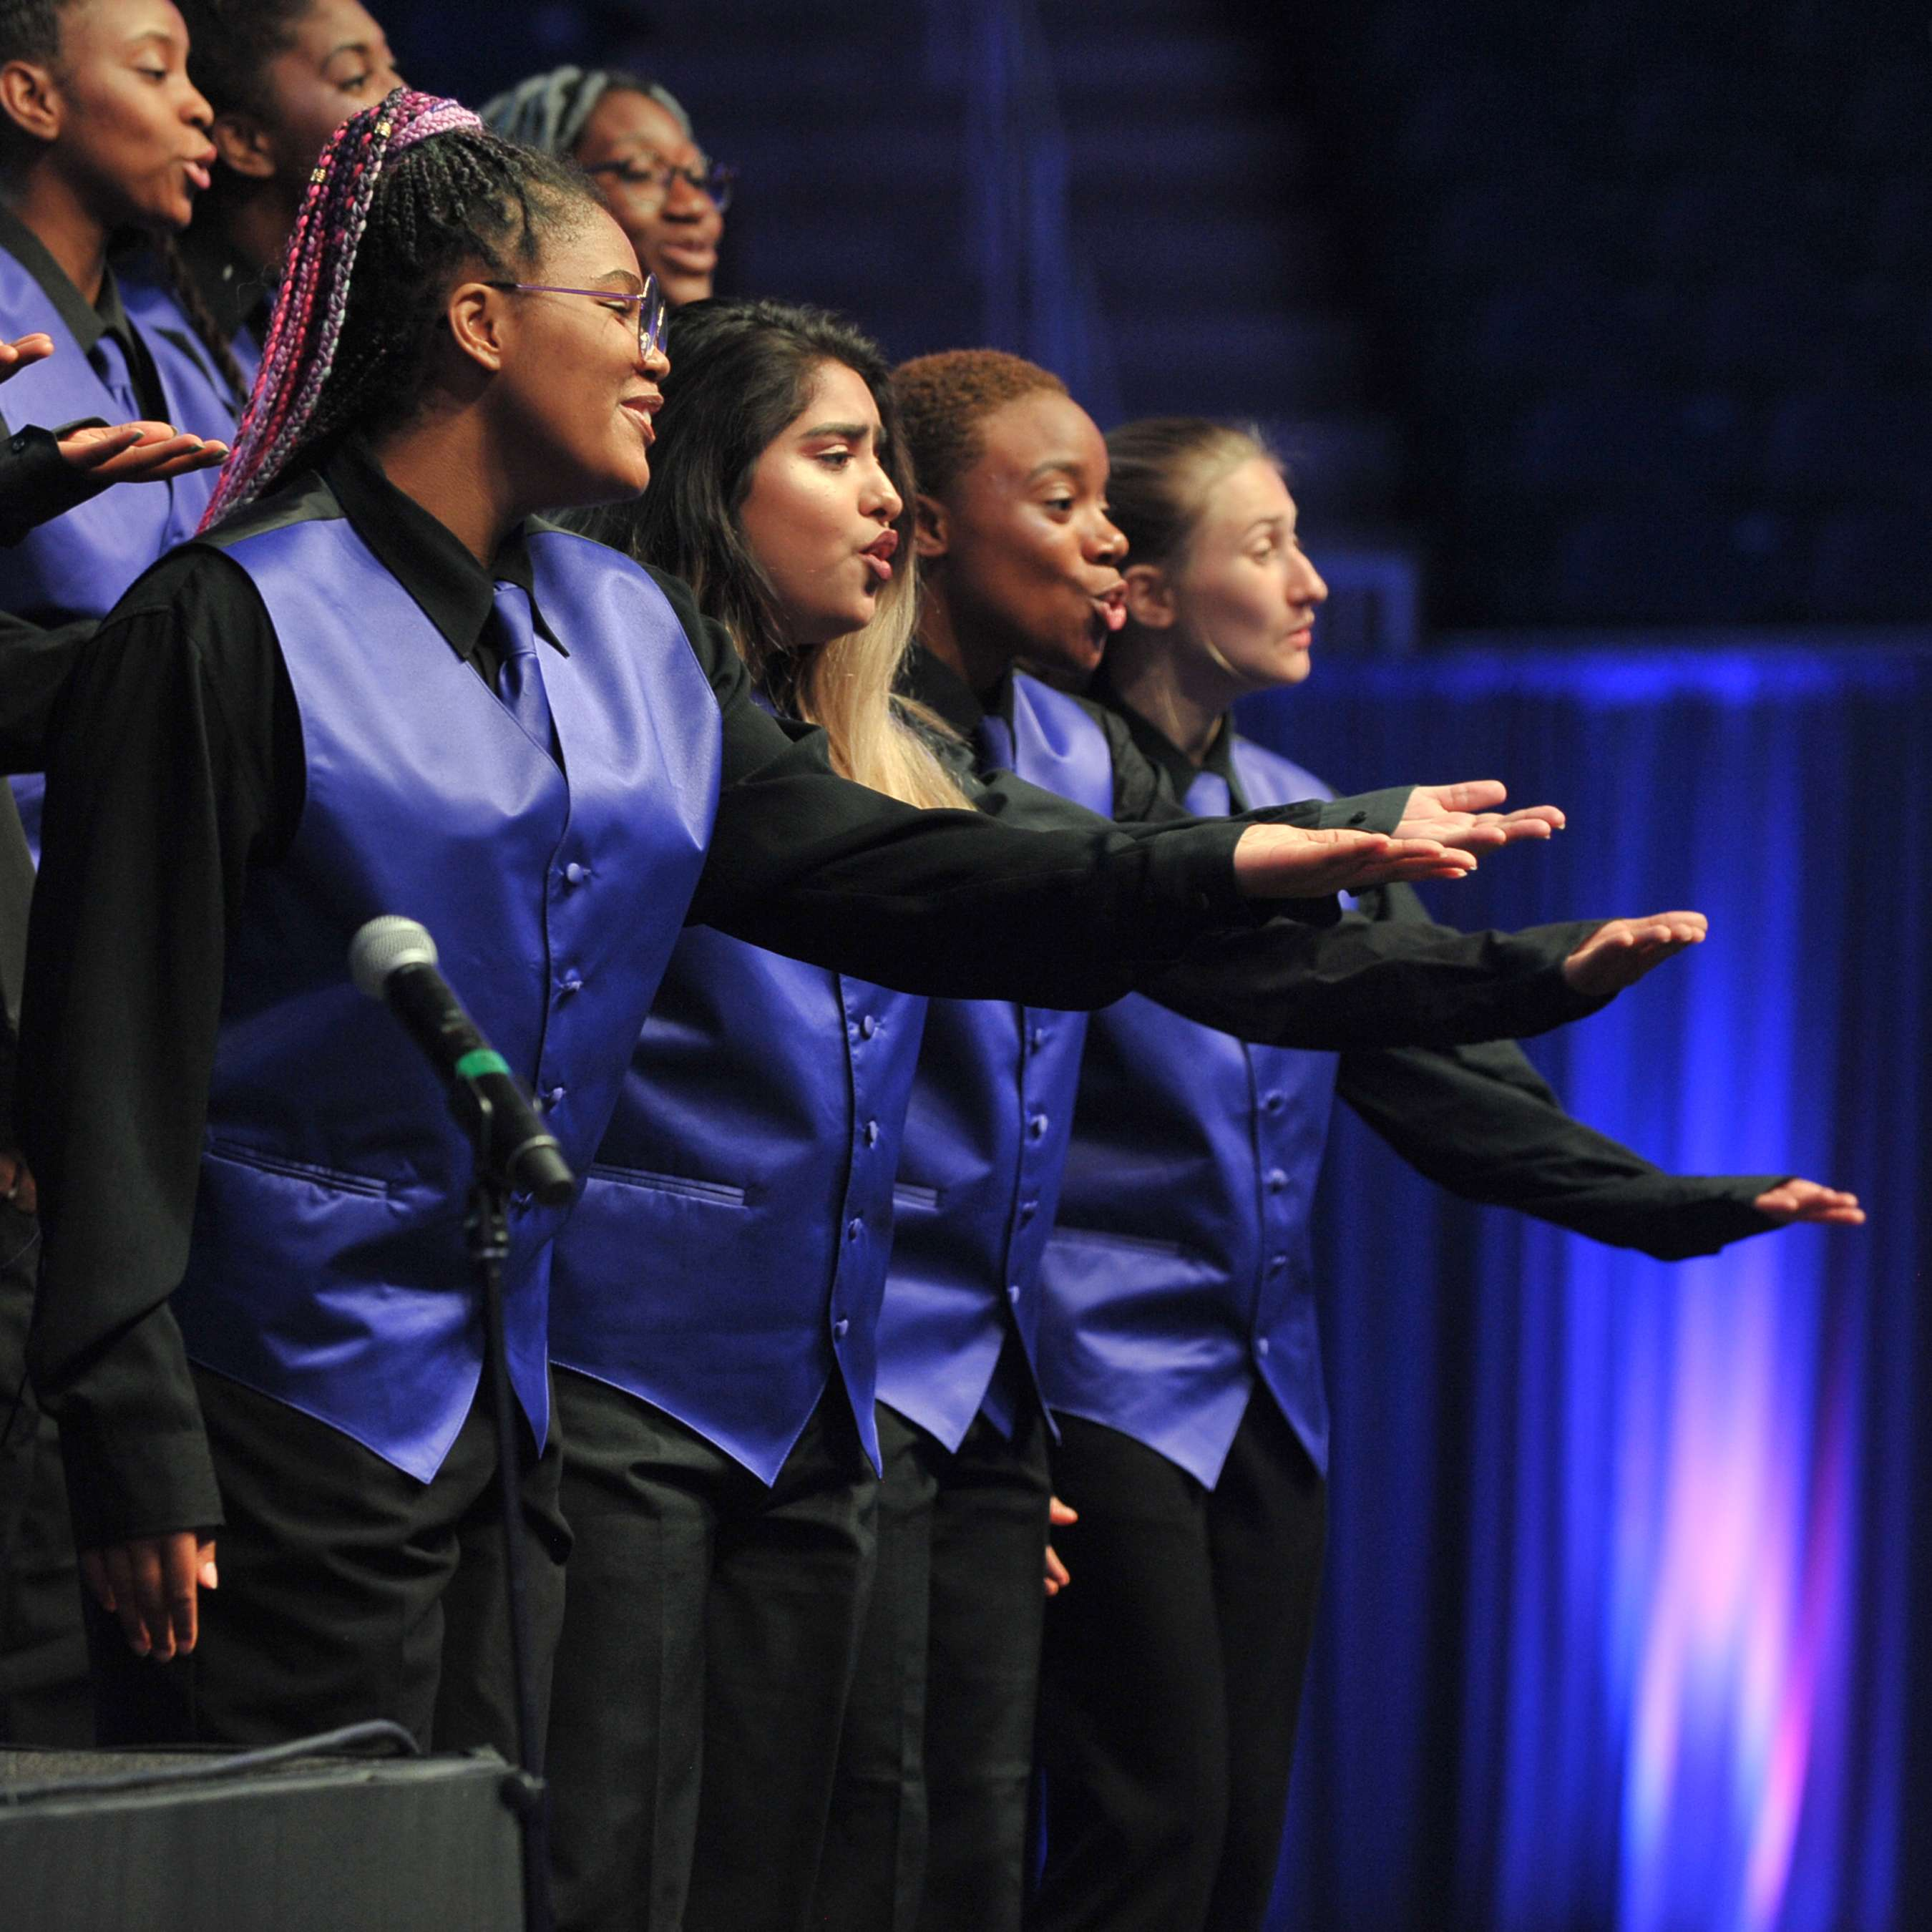 """<p>More than 30 teens in the After School Matters HHW Vocal Arts Ensemble program performed Michael Jackson's """"Heal The World"""" for an audience of nearly 800 supporters during the After School Matters Annual Gala on September 18, 2017. Photo credit: Dan Rest</p>"""